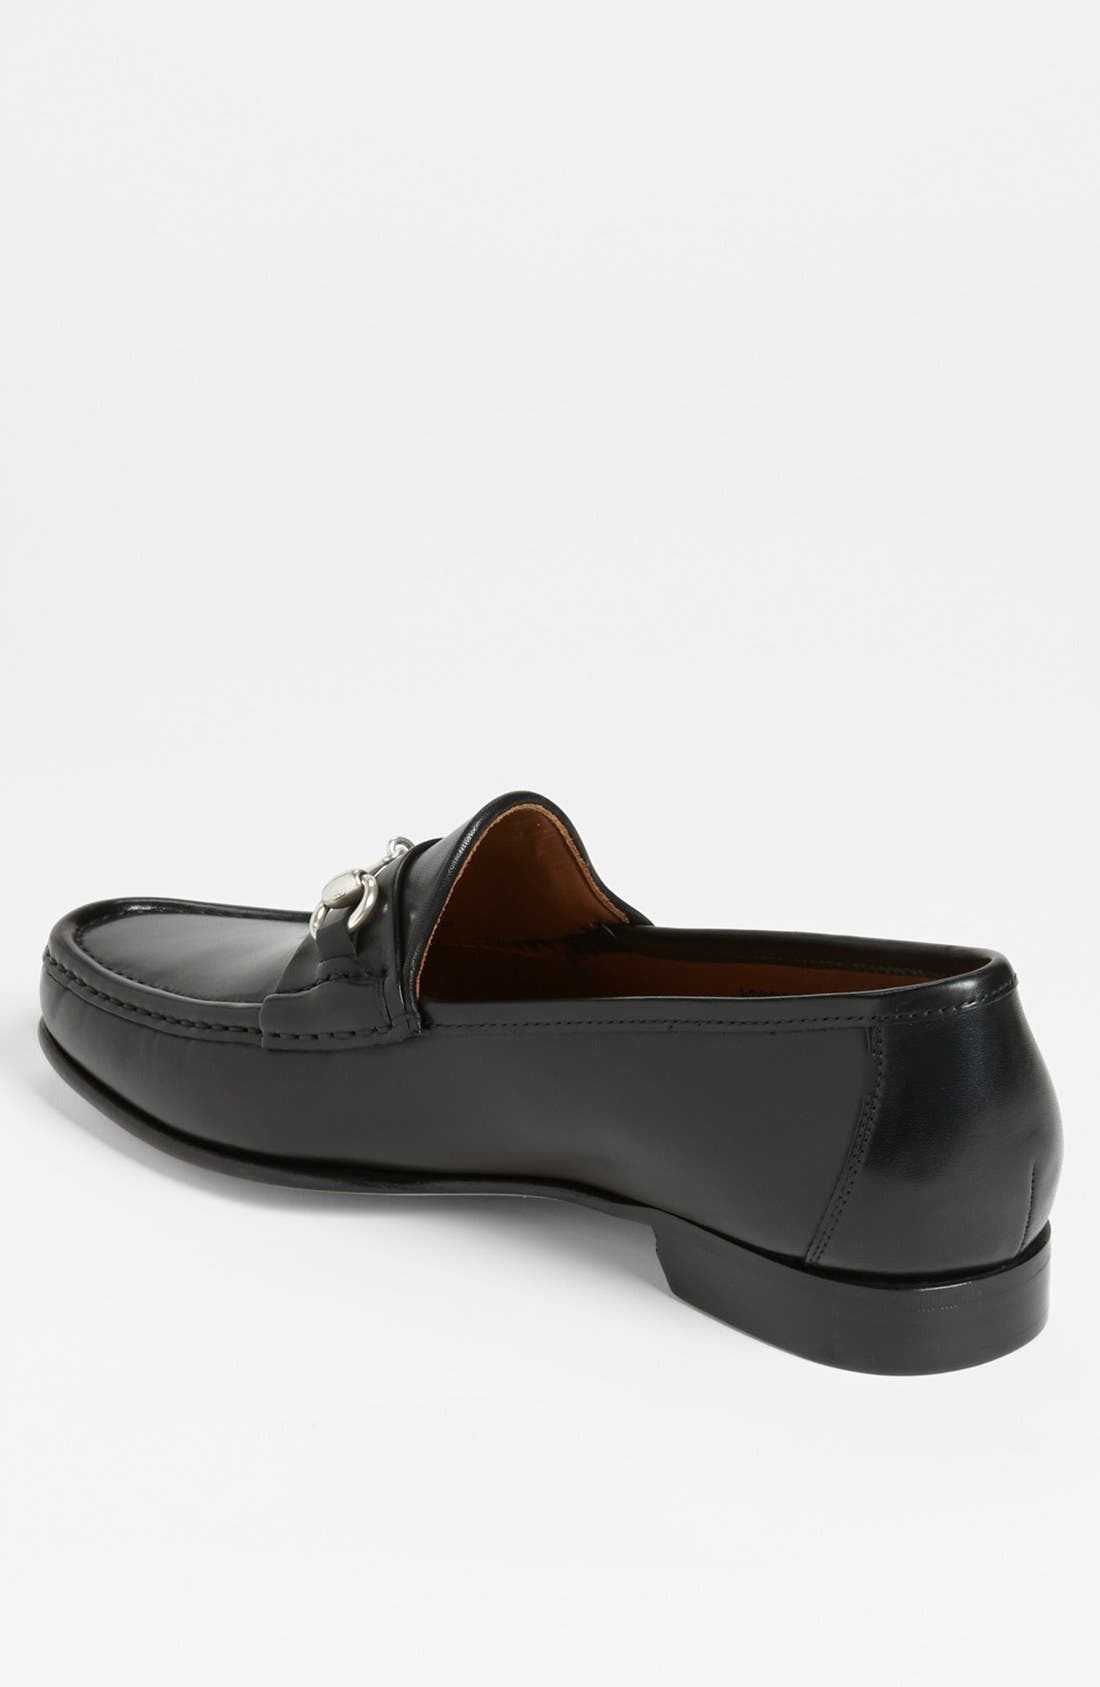 Verona II Bit Loafer,                             Alternate thumbnail 2, color,                             BLACK